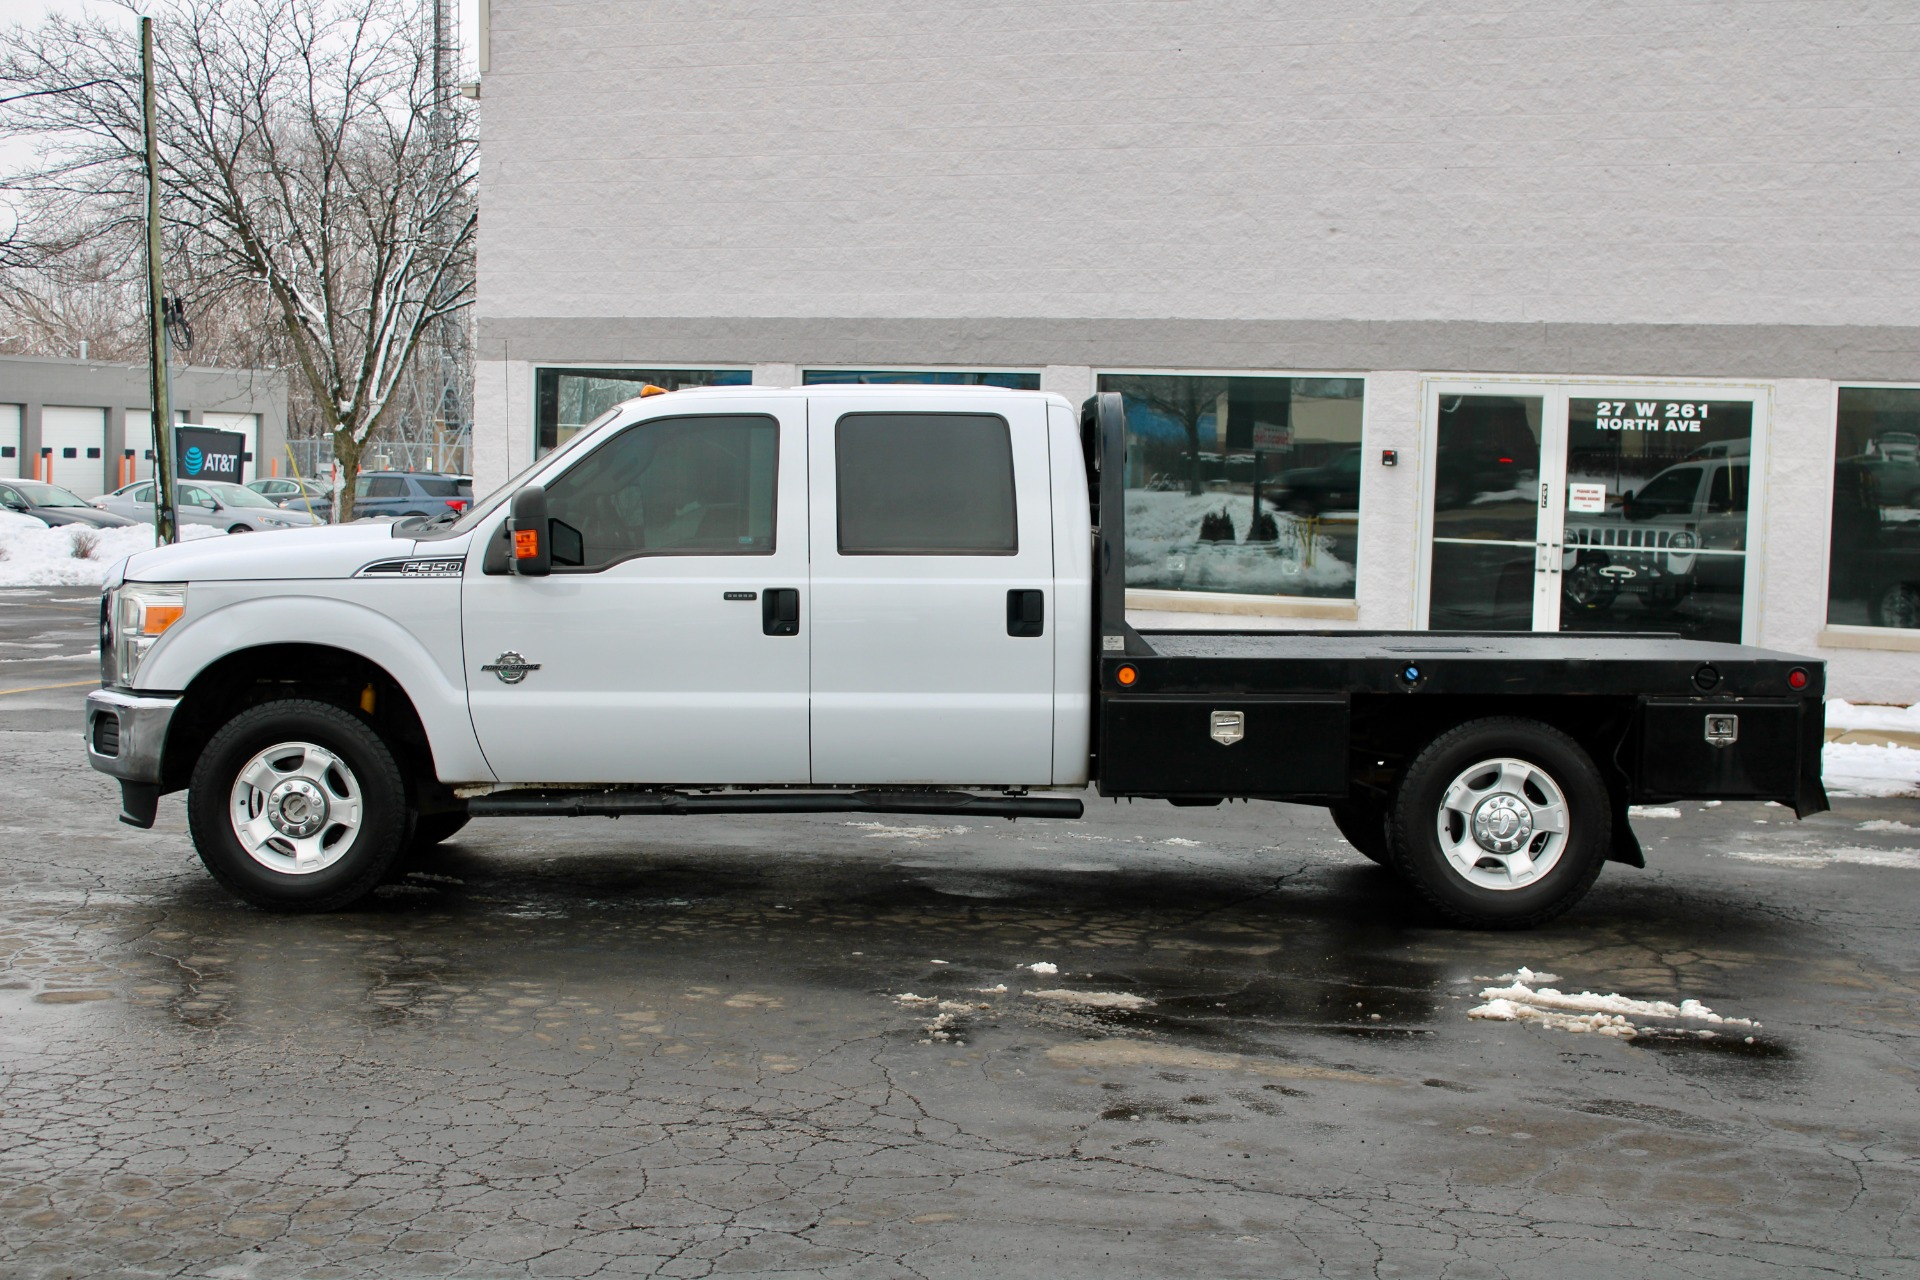 Used-2013-Ford-F-350-Super-Duty-XLT-4x4-Diesel-Flat-Bed-with-5th-Wheel